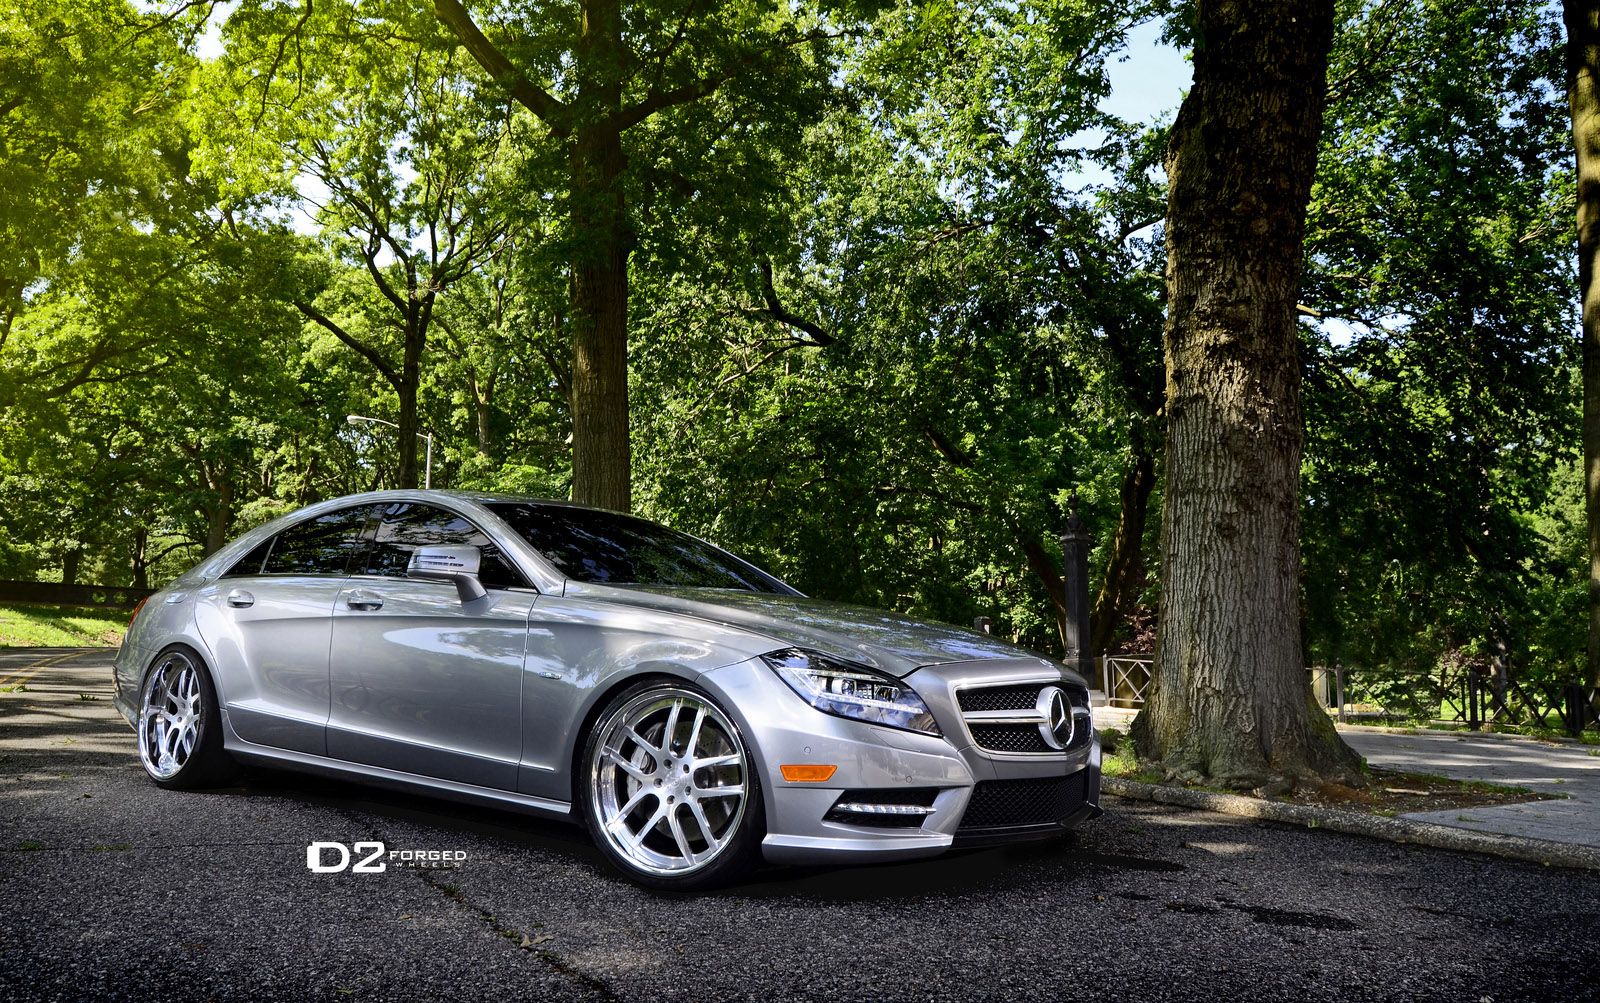 Index Of Img D2forged Mercedes Benz Cls 550 Fms08 2008 Cls550 Rims 02